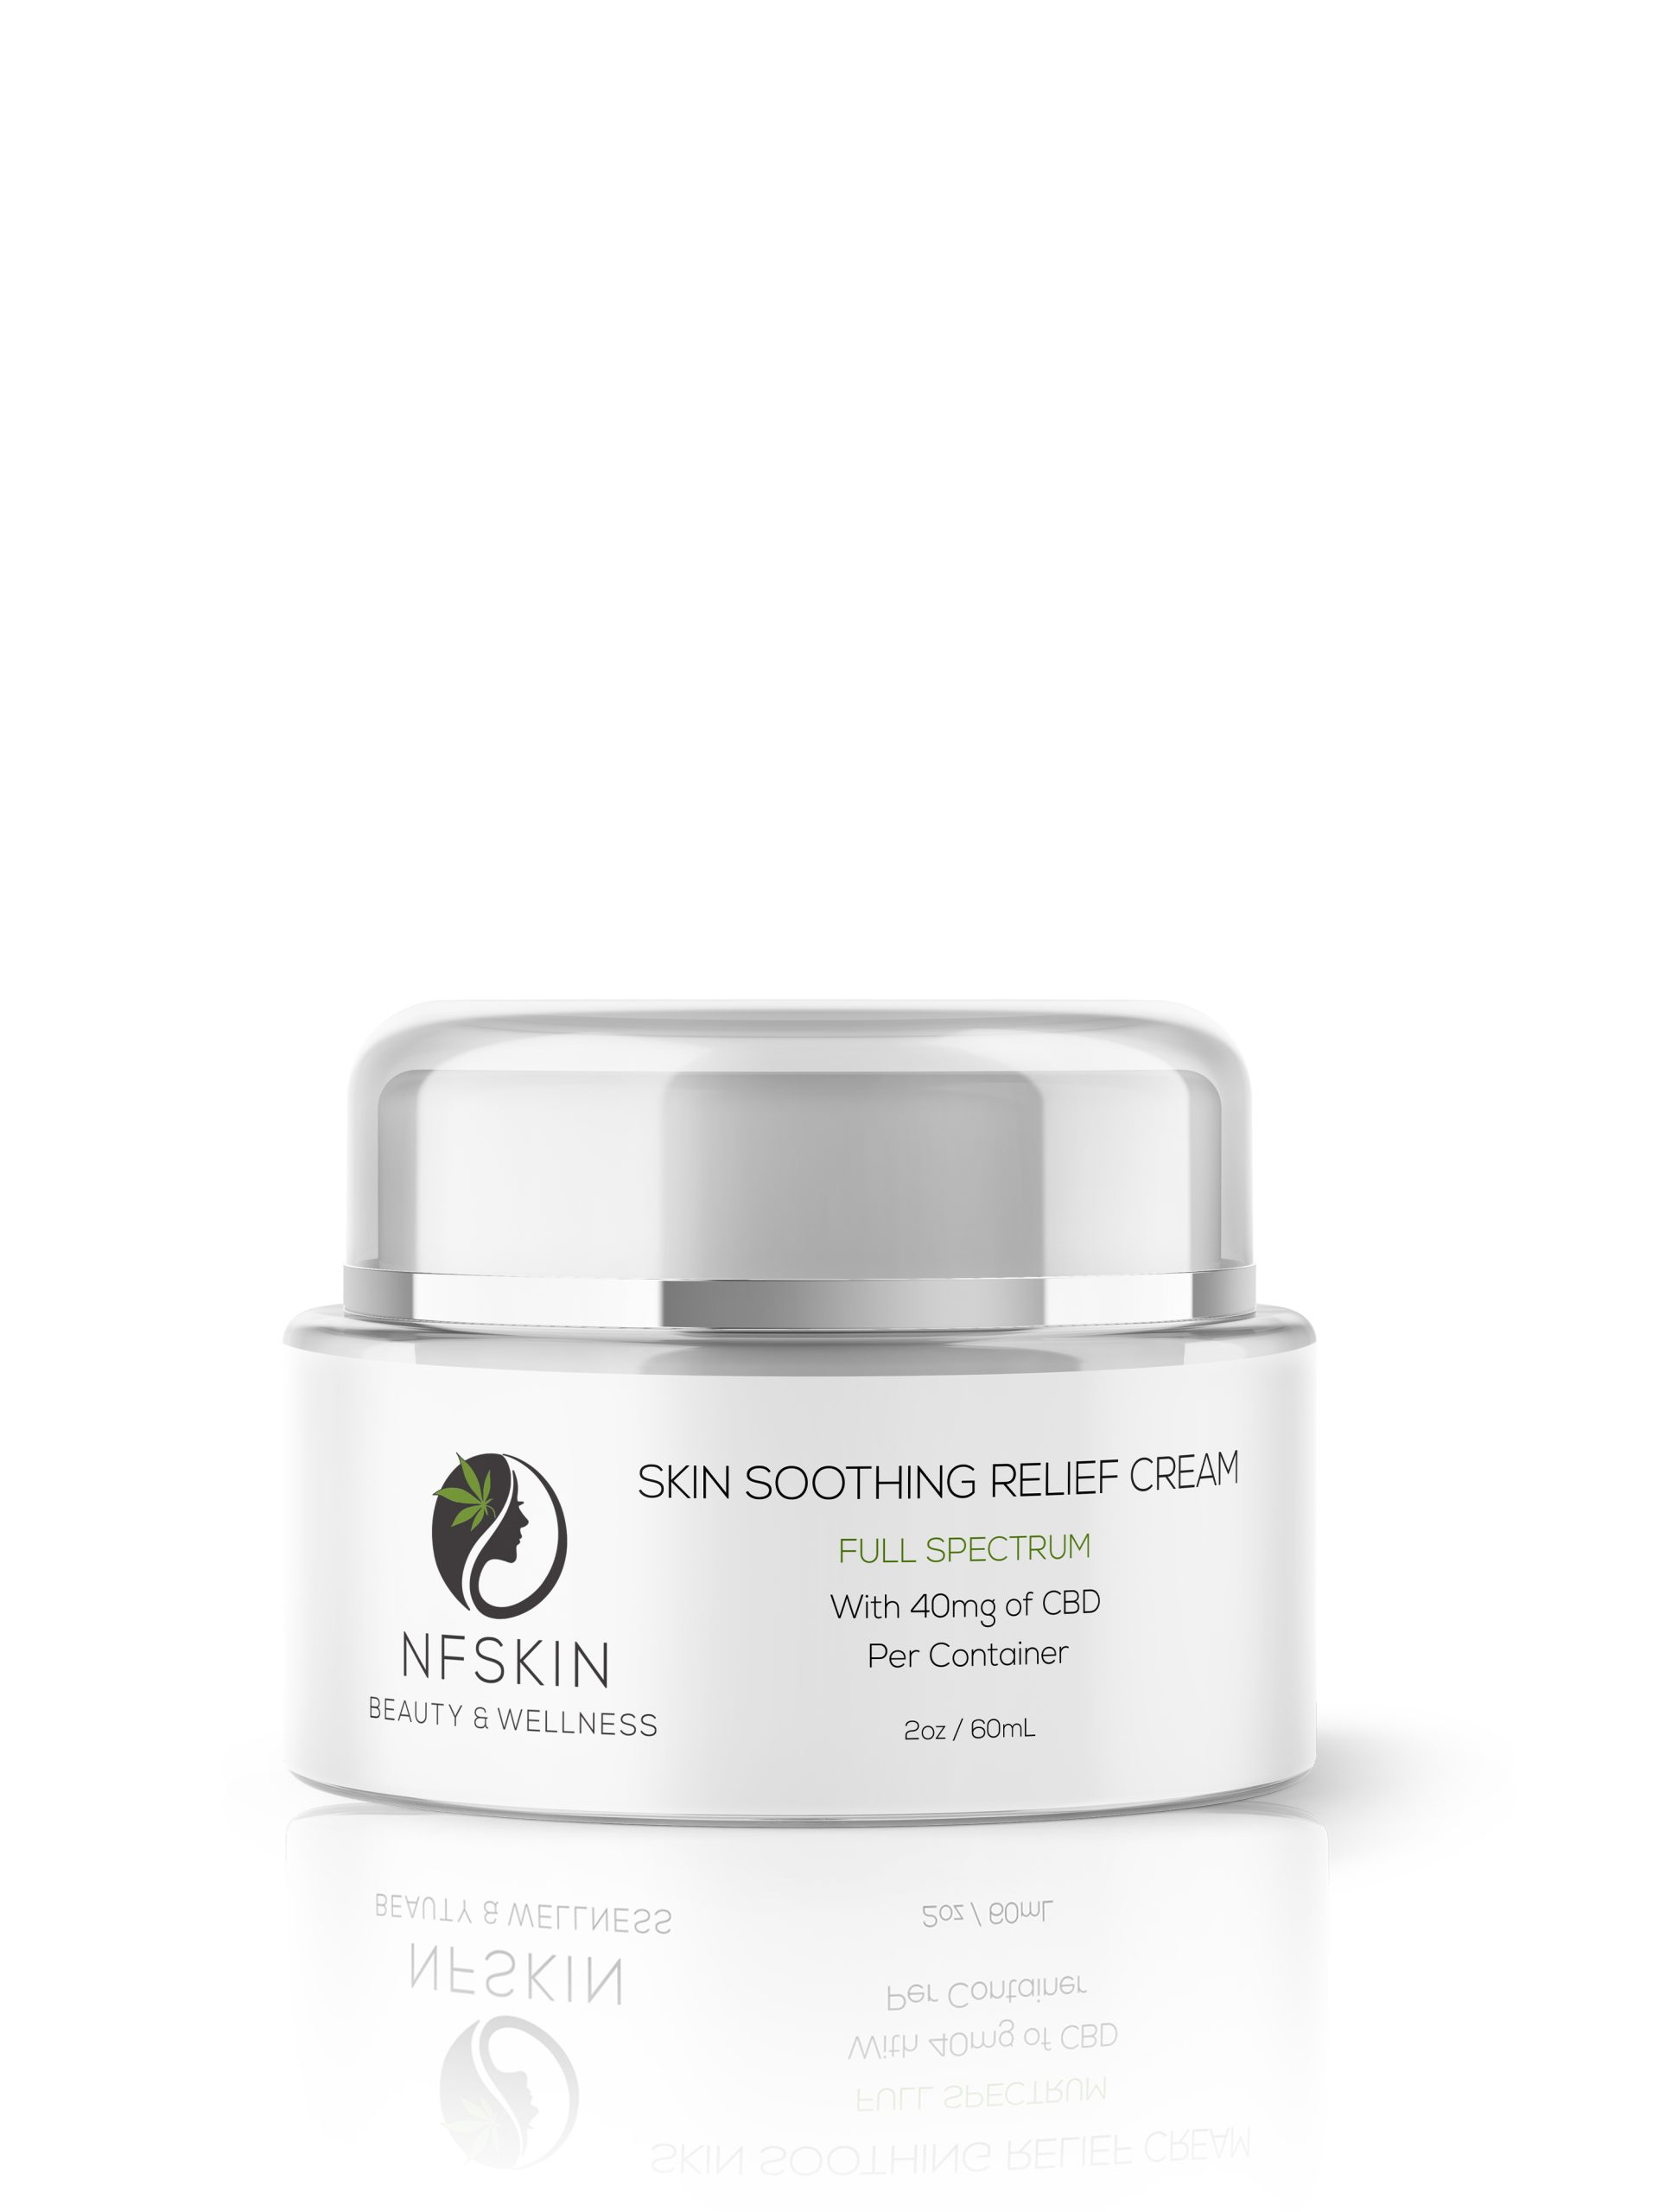 Skin Soothing Relief Cream